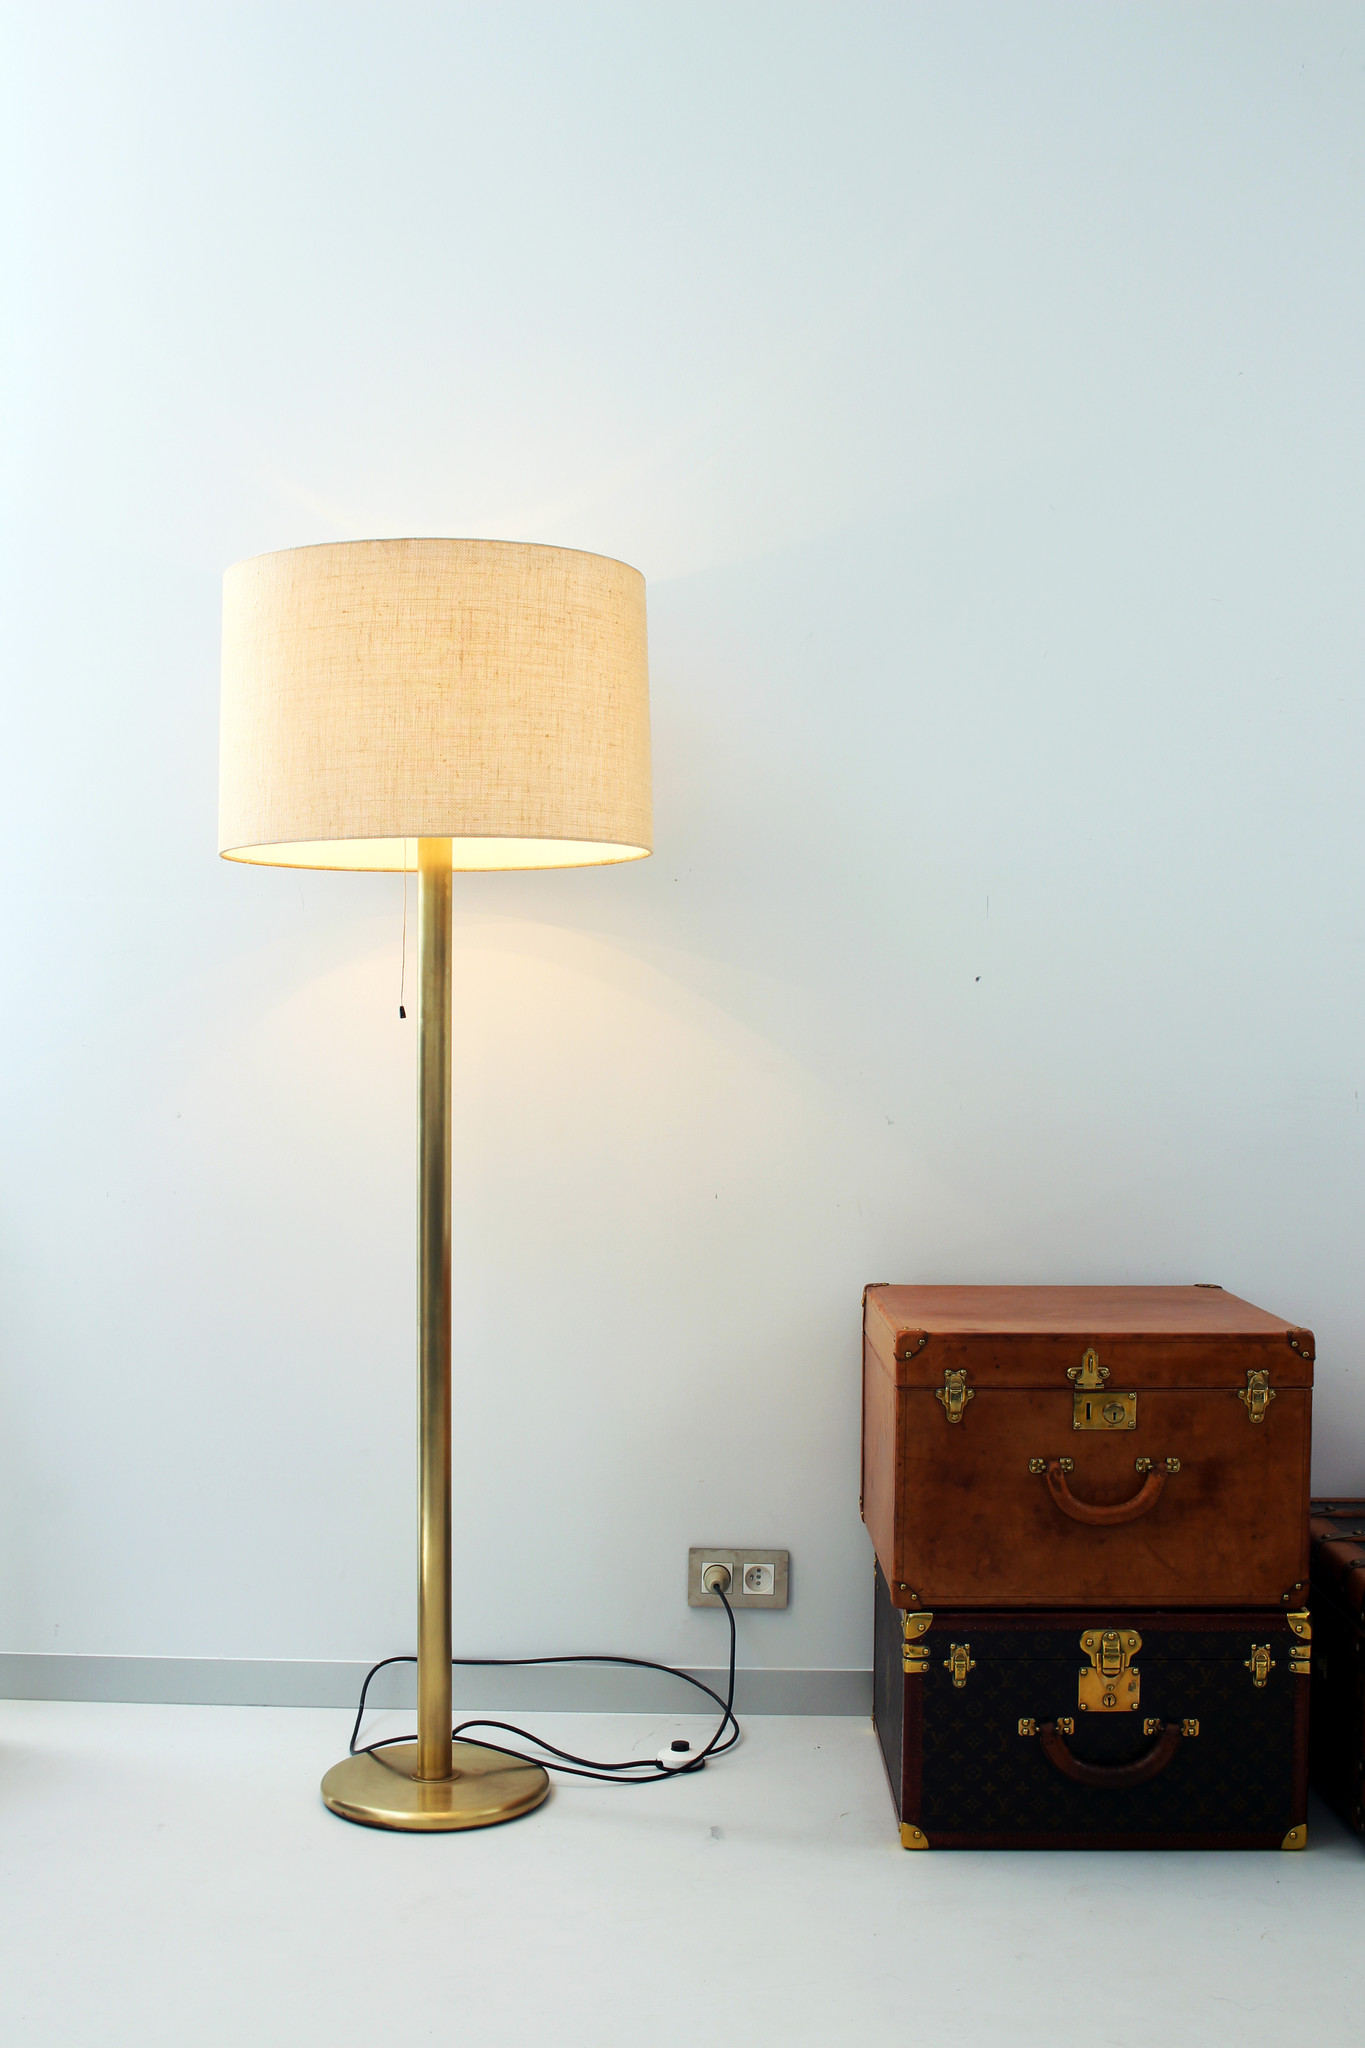 Pair of vintage brass floor lamps from the 1970s